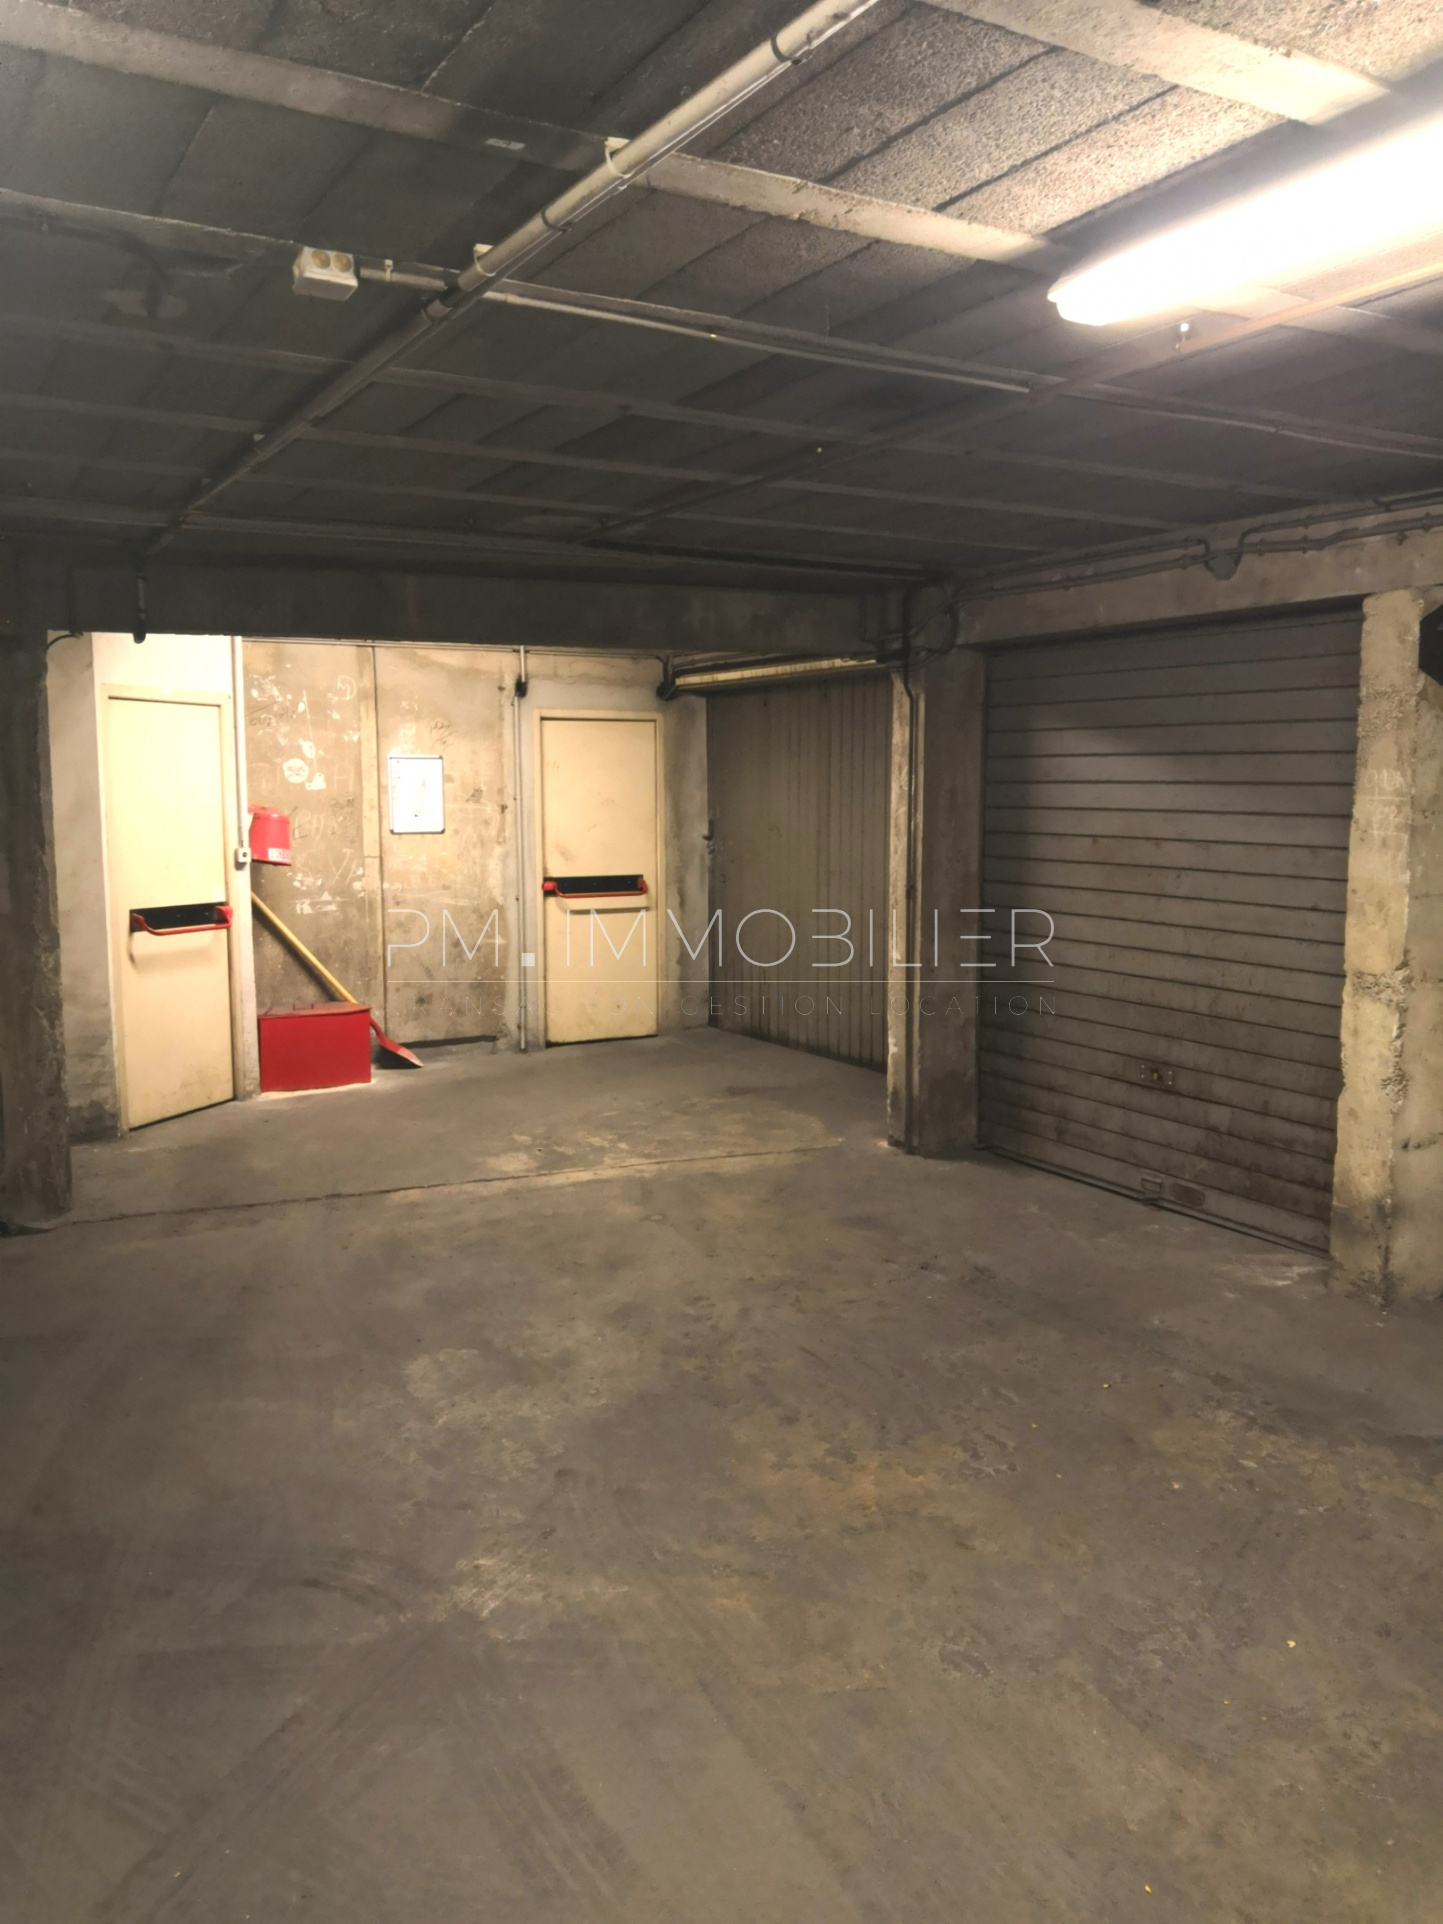 Location garage 13004 marseille cinq avenue pm gestion for Location garage marseille 7eme